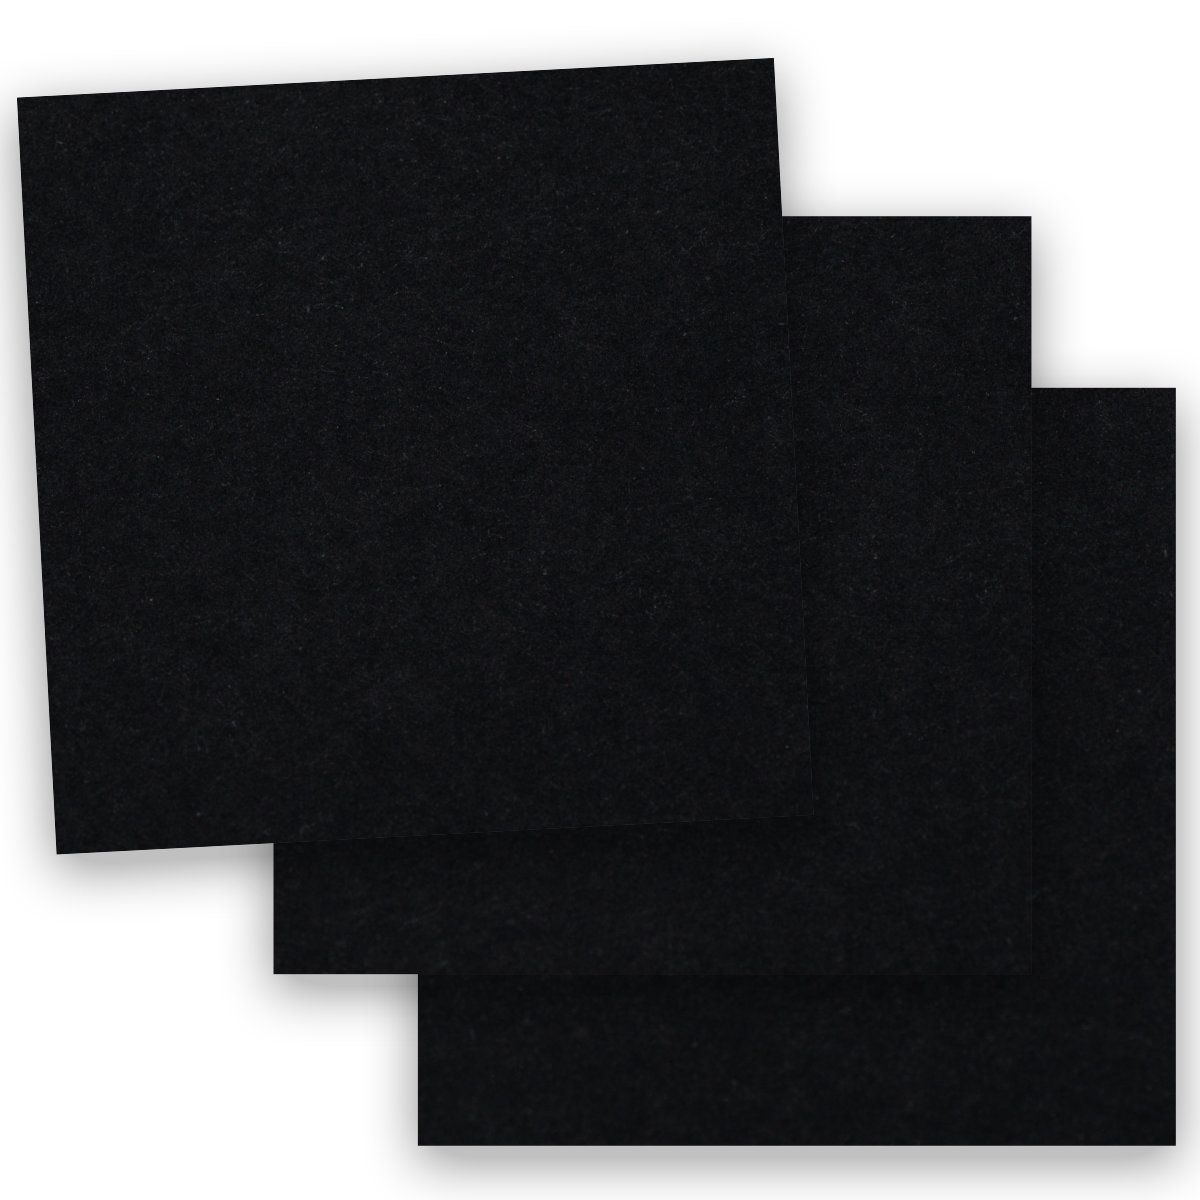 Basis Colors 12 X 12 Cardstock Paper Black 80lb Cover 50 Pk In 2020 Cover Paper Color Black Paper